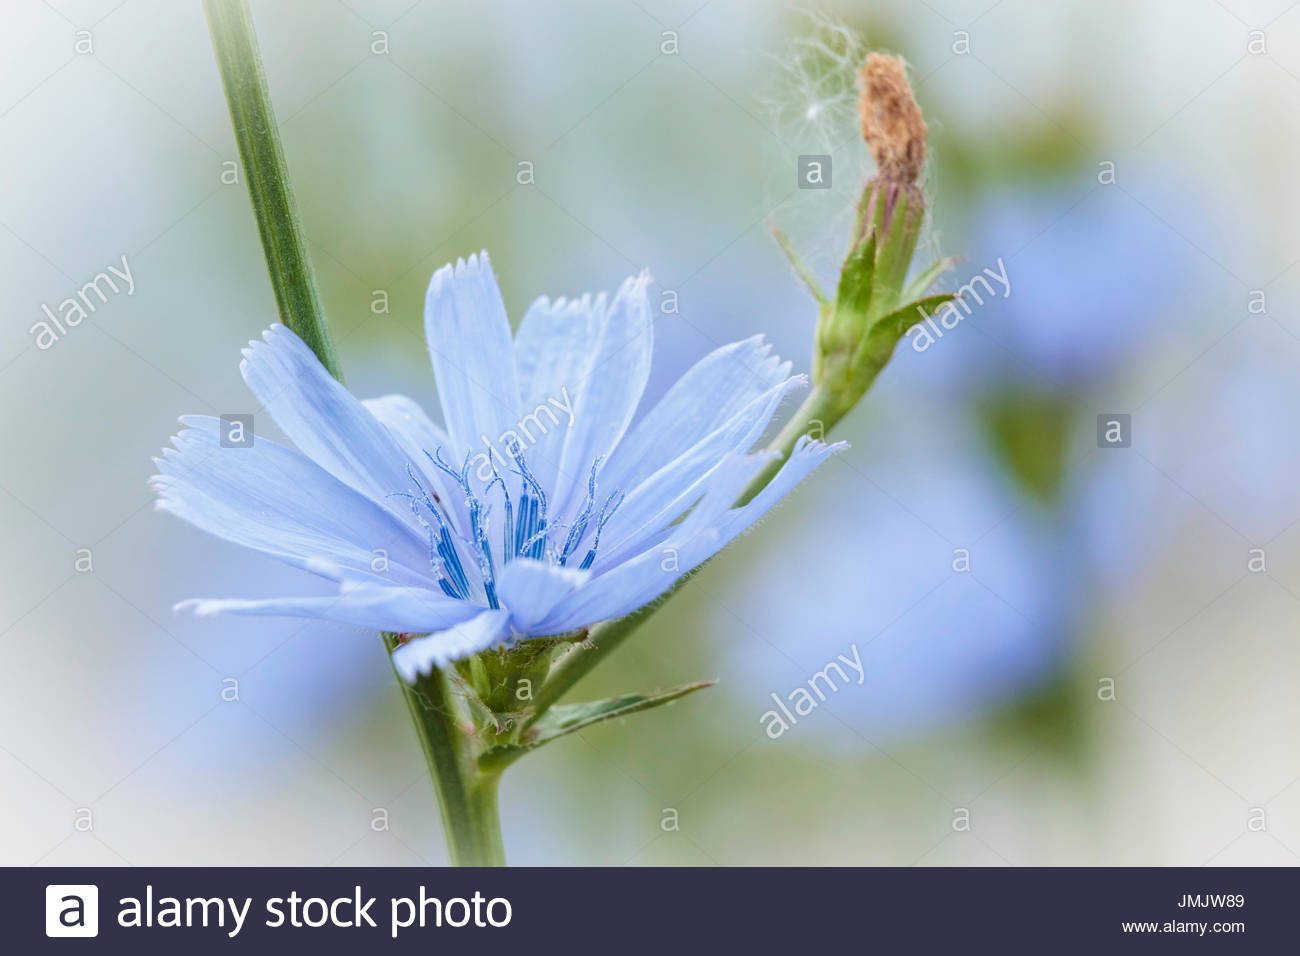 chicory Cichorium intybus Asteraceae flower wildflower blue daisy blue dandelion blue sailors blue weed bunk coffeeweed - Stock Image